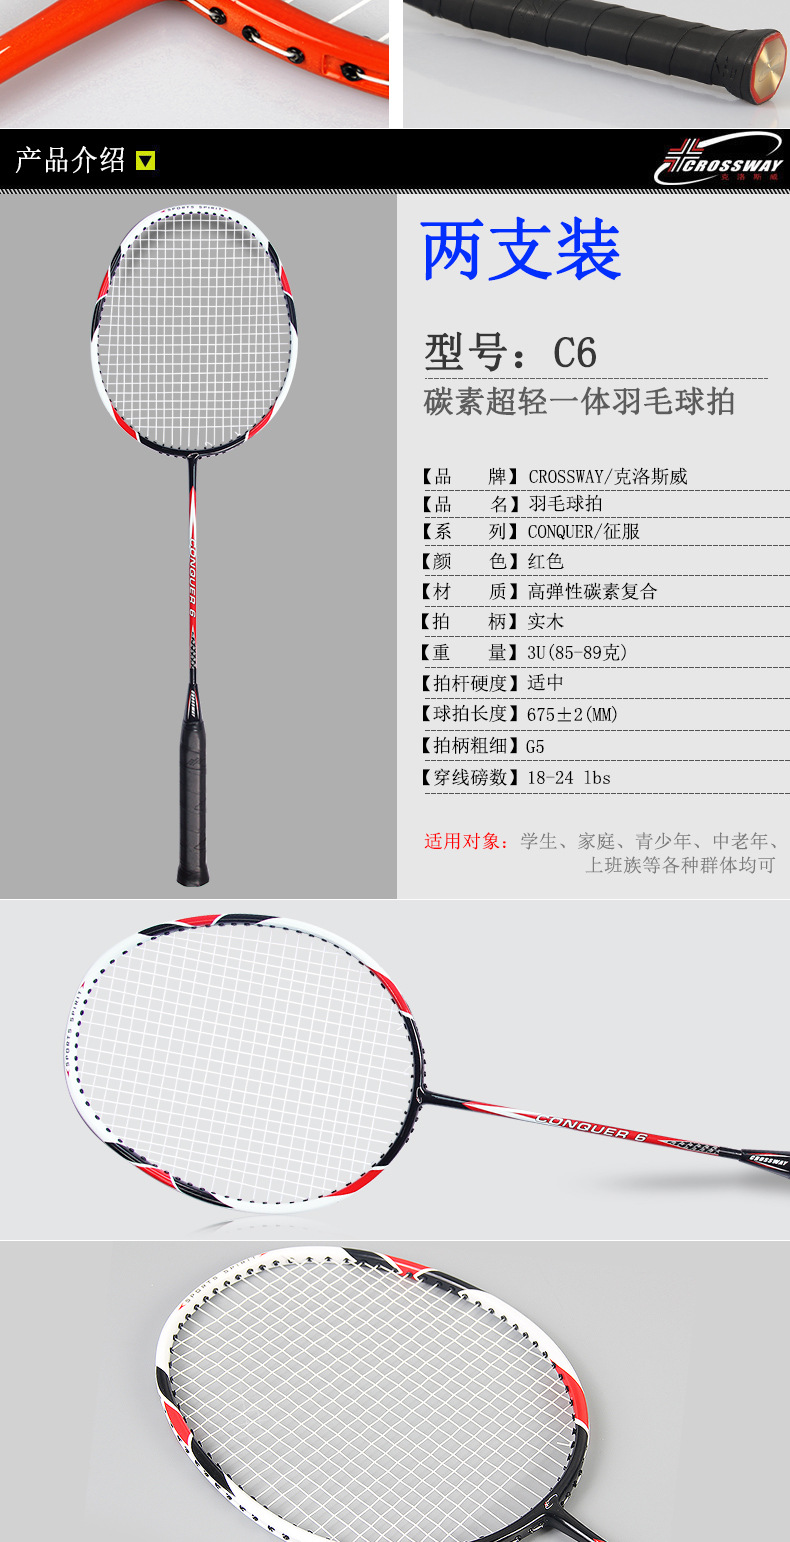 Crossway 2Pcs Best Doubles Match Badminton Rackets Carbon Smash Championships Shuttlecock Speedminton Racquets Equipment Kit Set 12